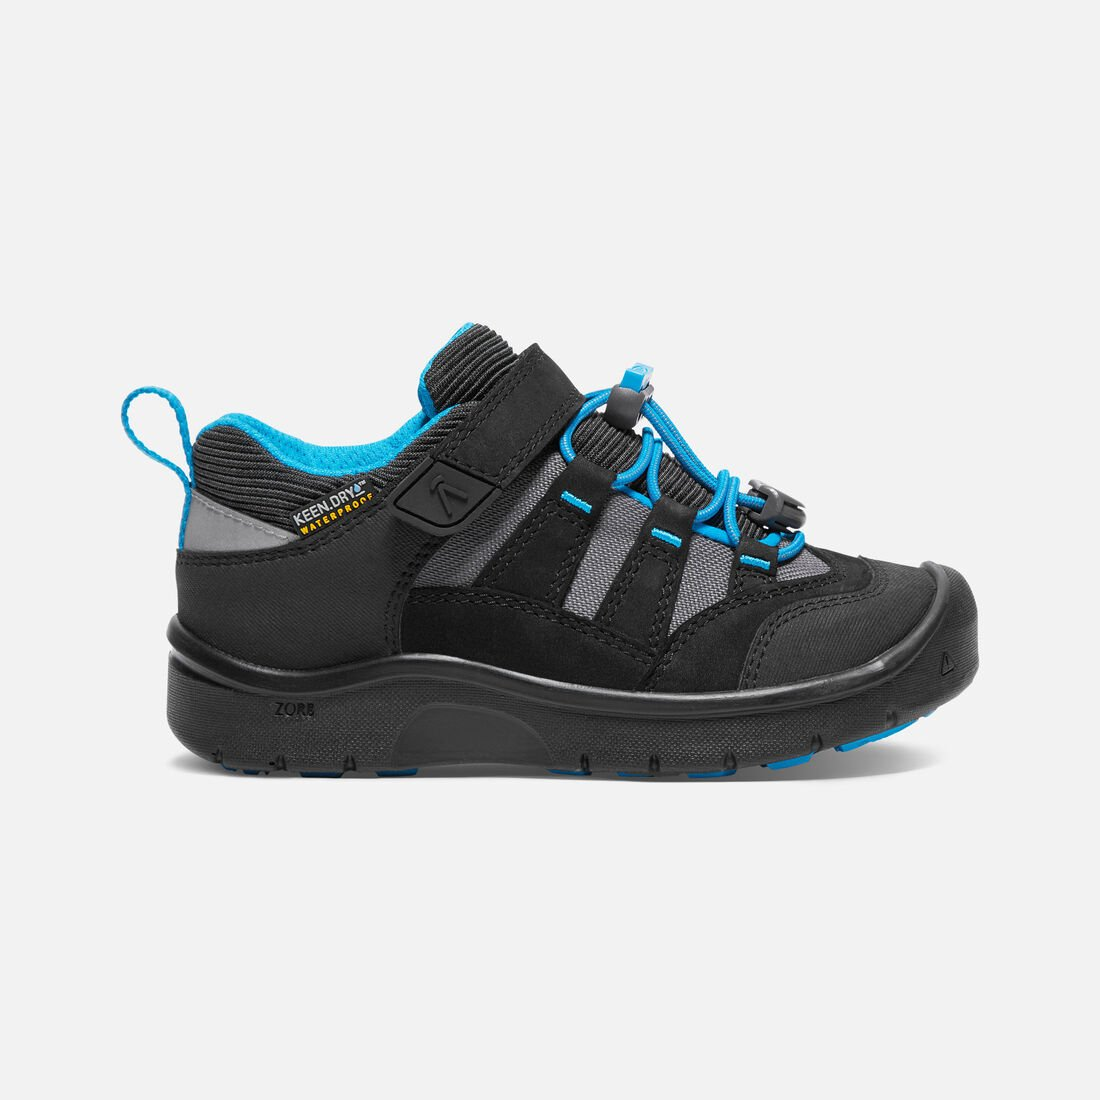 YOUNGER KIDS' HIKEPORT WATERPROOF HIKING TRAINERS in Black/Blue Jewel - large view.